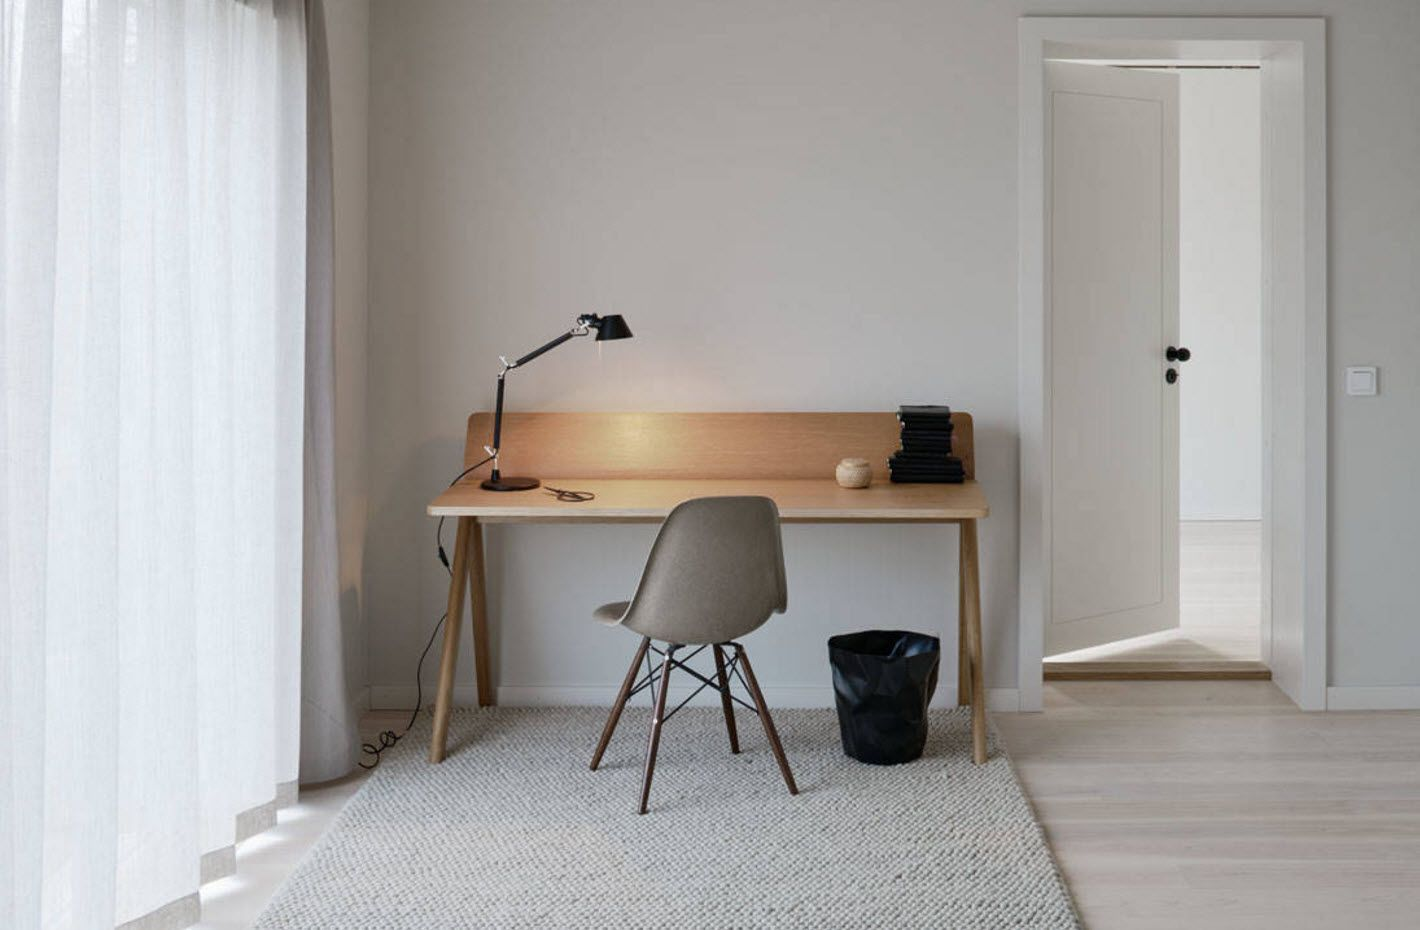 Dream working space with wooden table and black bin